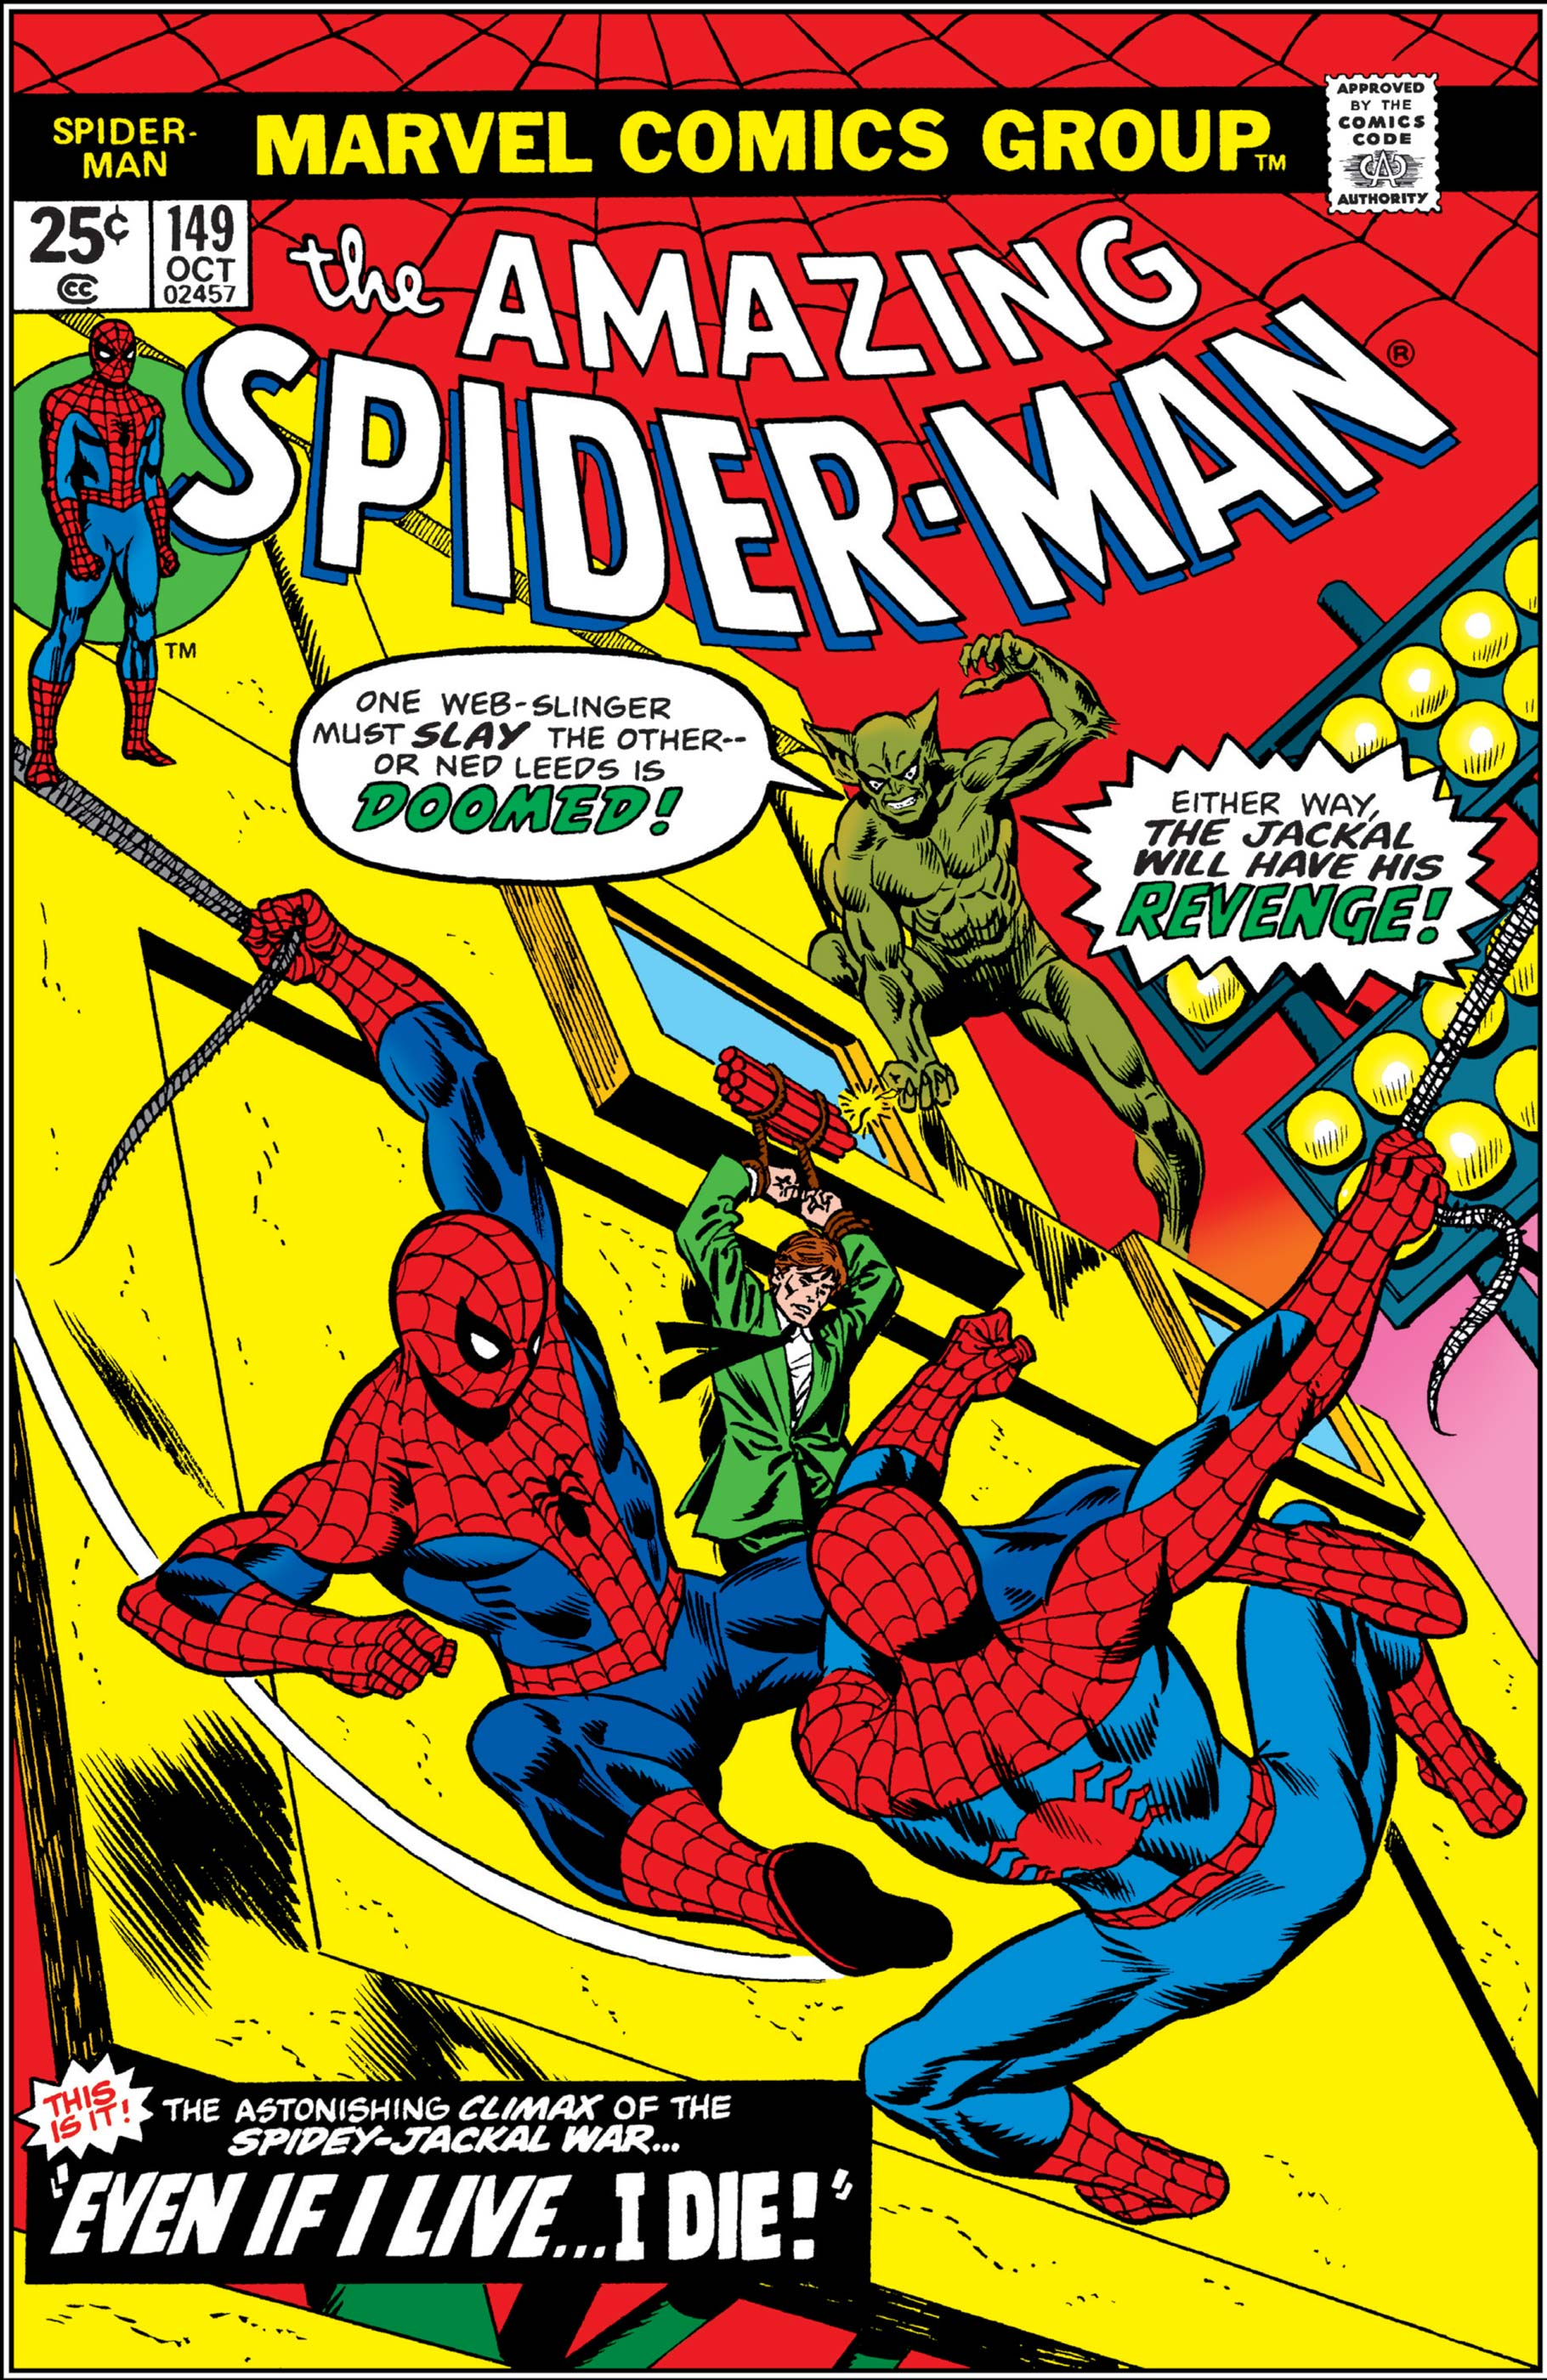 The Amazing Spider-Man (1963) #149